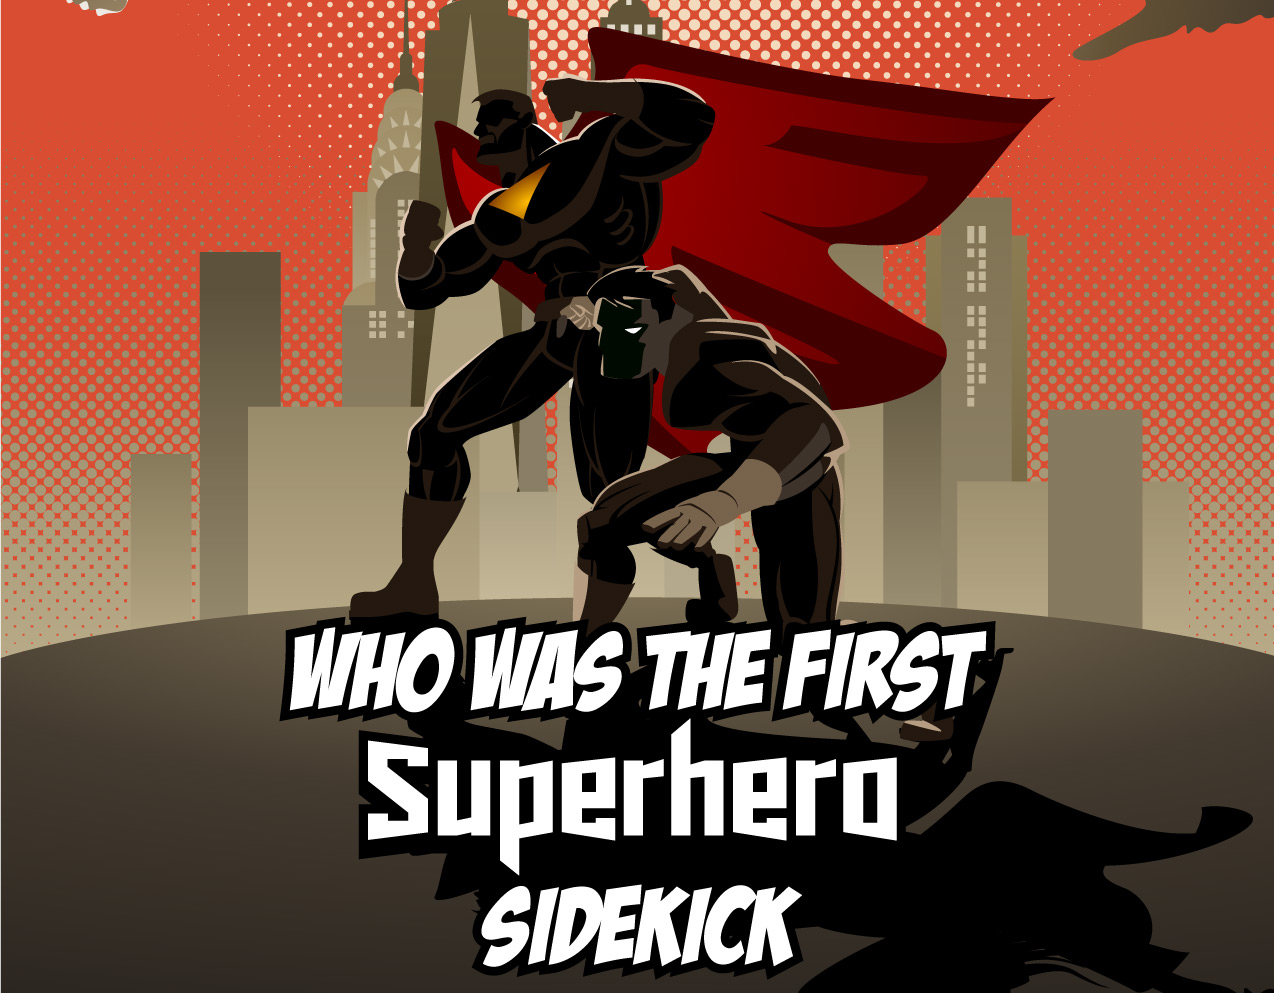 who-is-the-first-superhero-sidekick